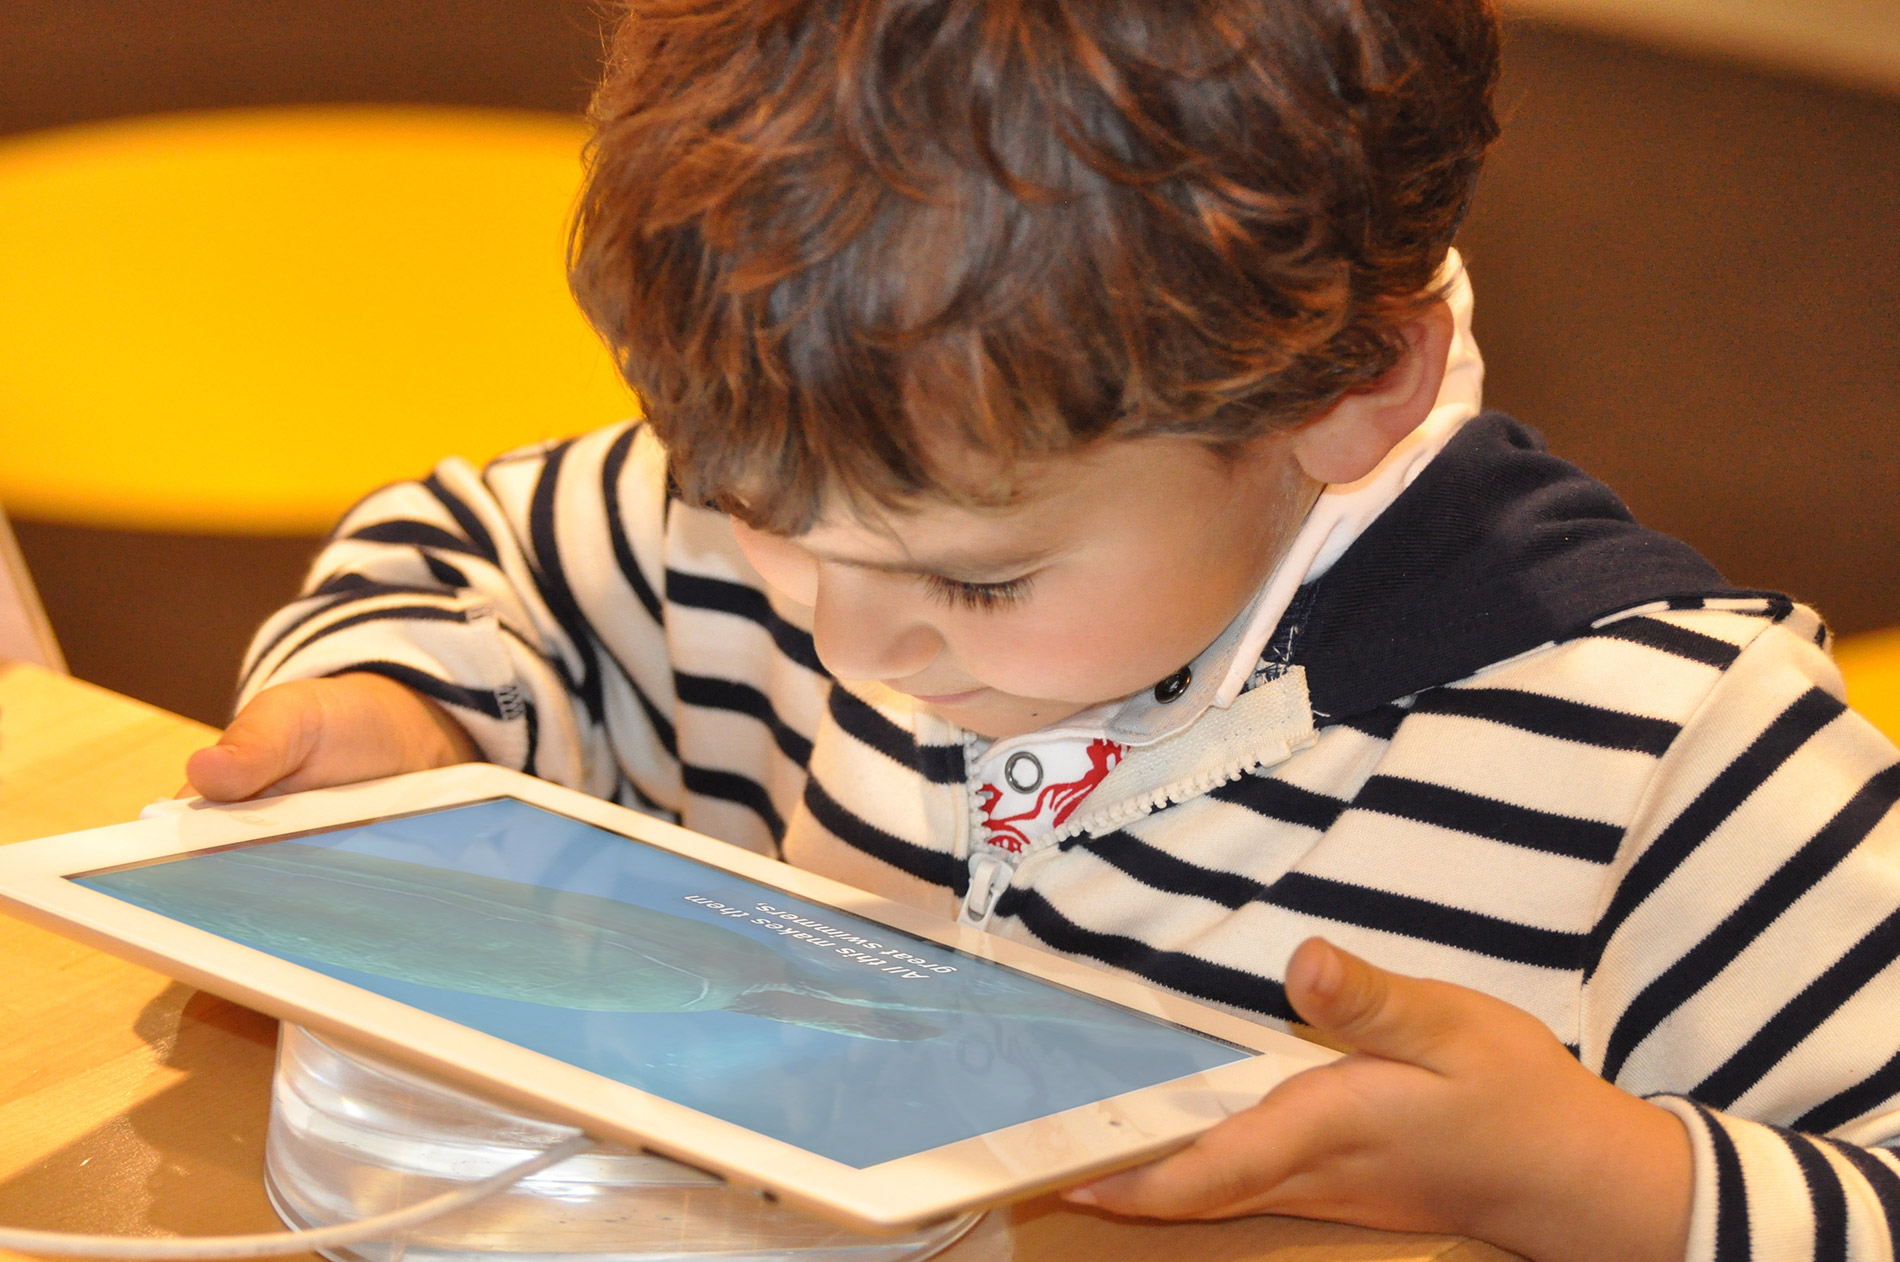 A young boy sits at a table, holding a tablet and watching a video on it.